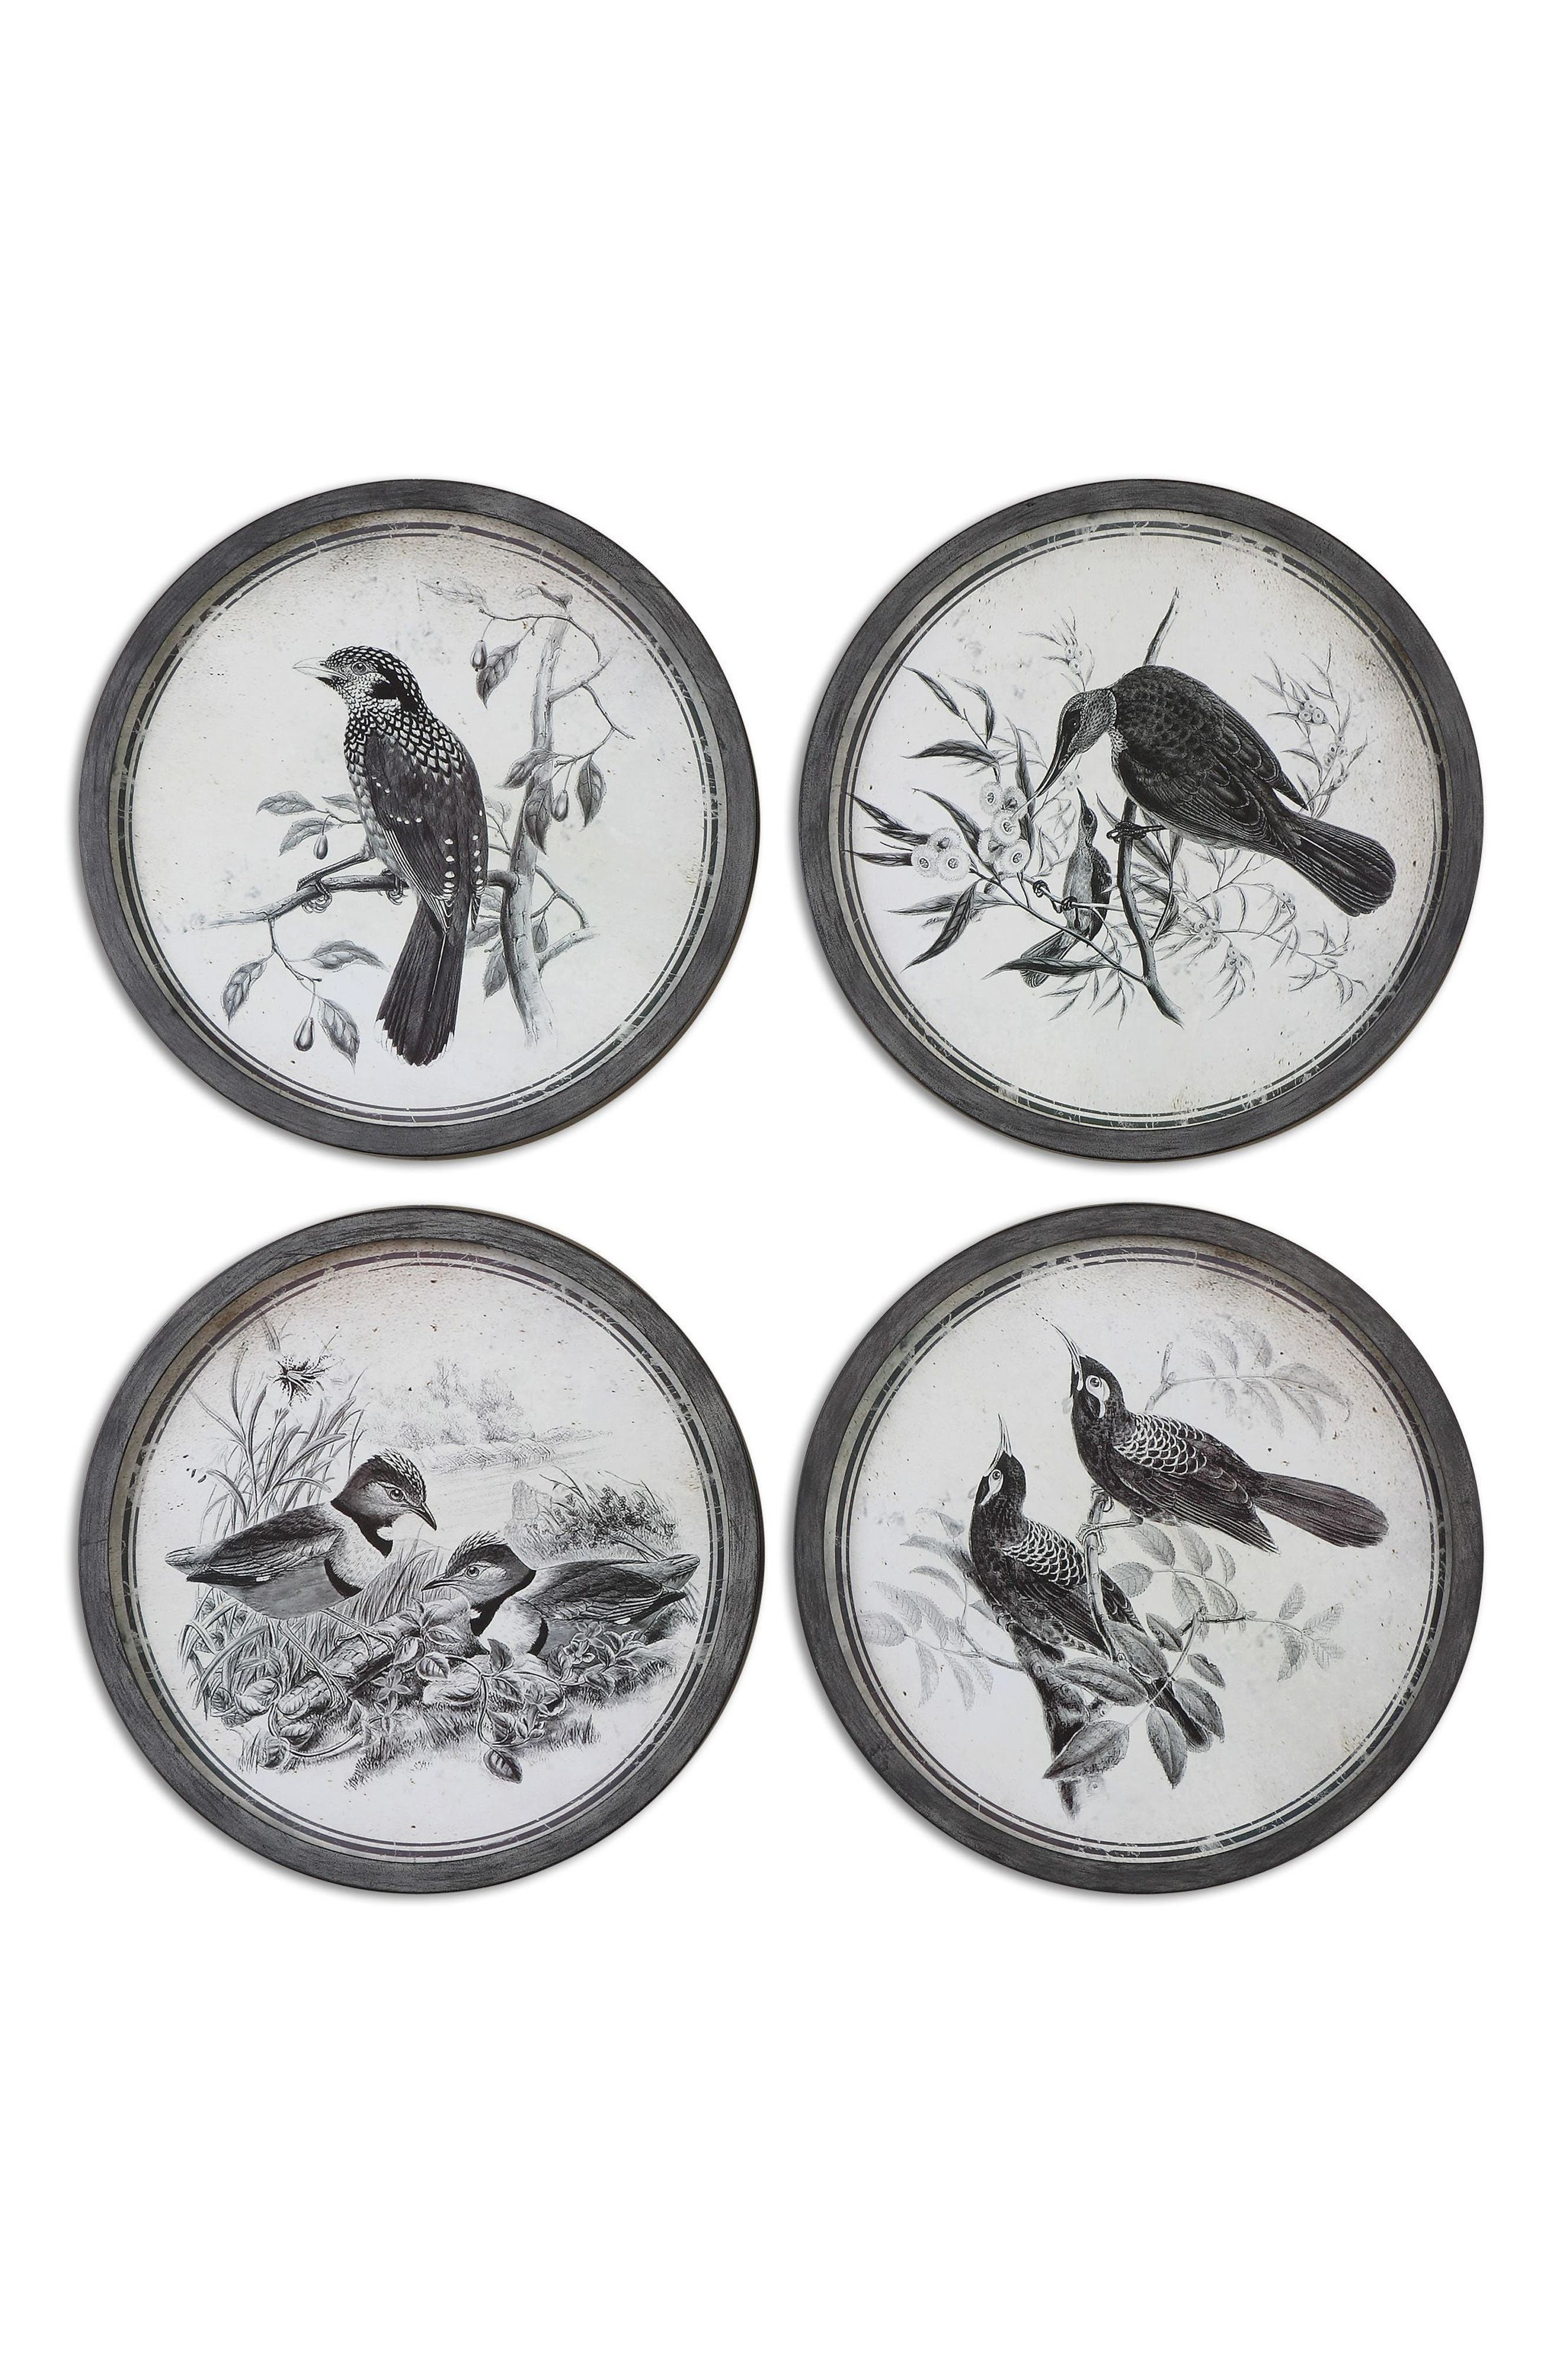 Main Image - Uttermost Birds In Nature 4-Piece Wall Art Set